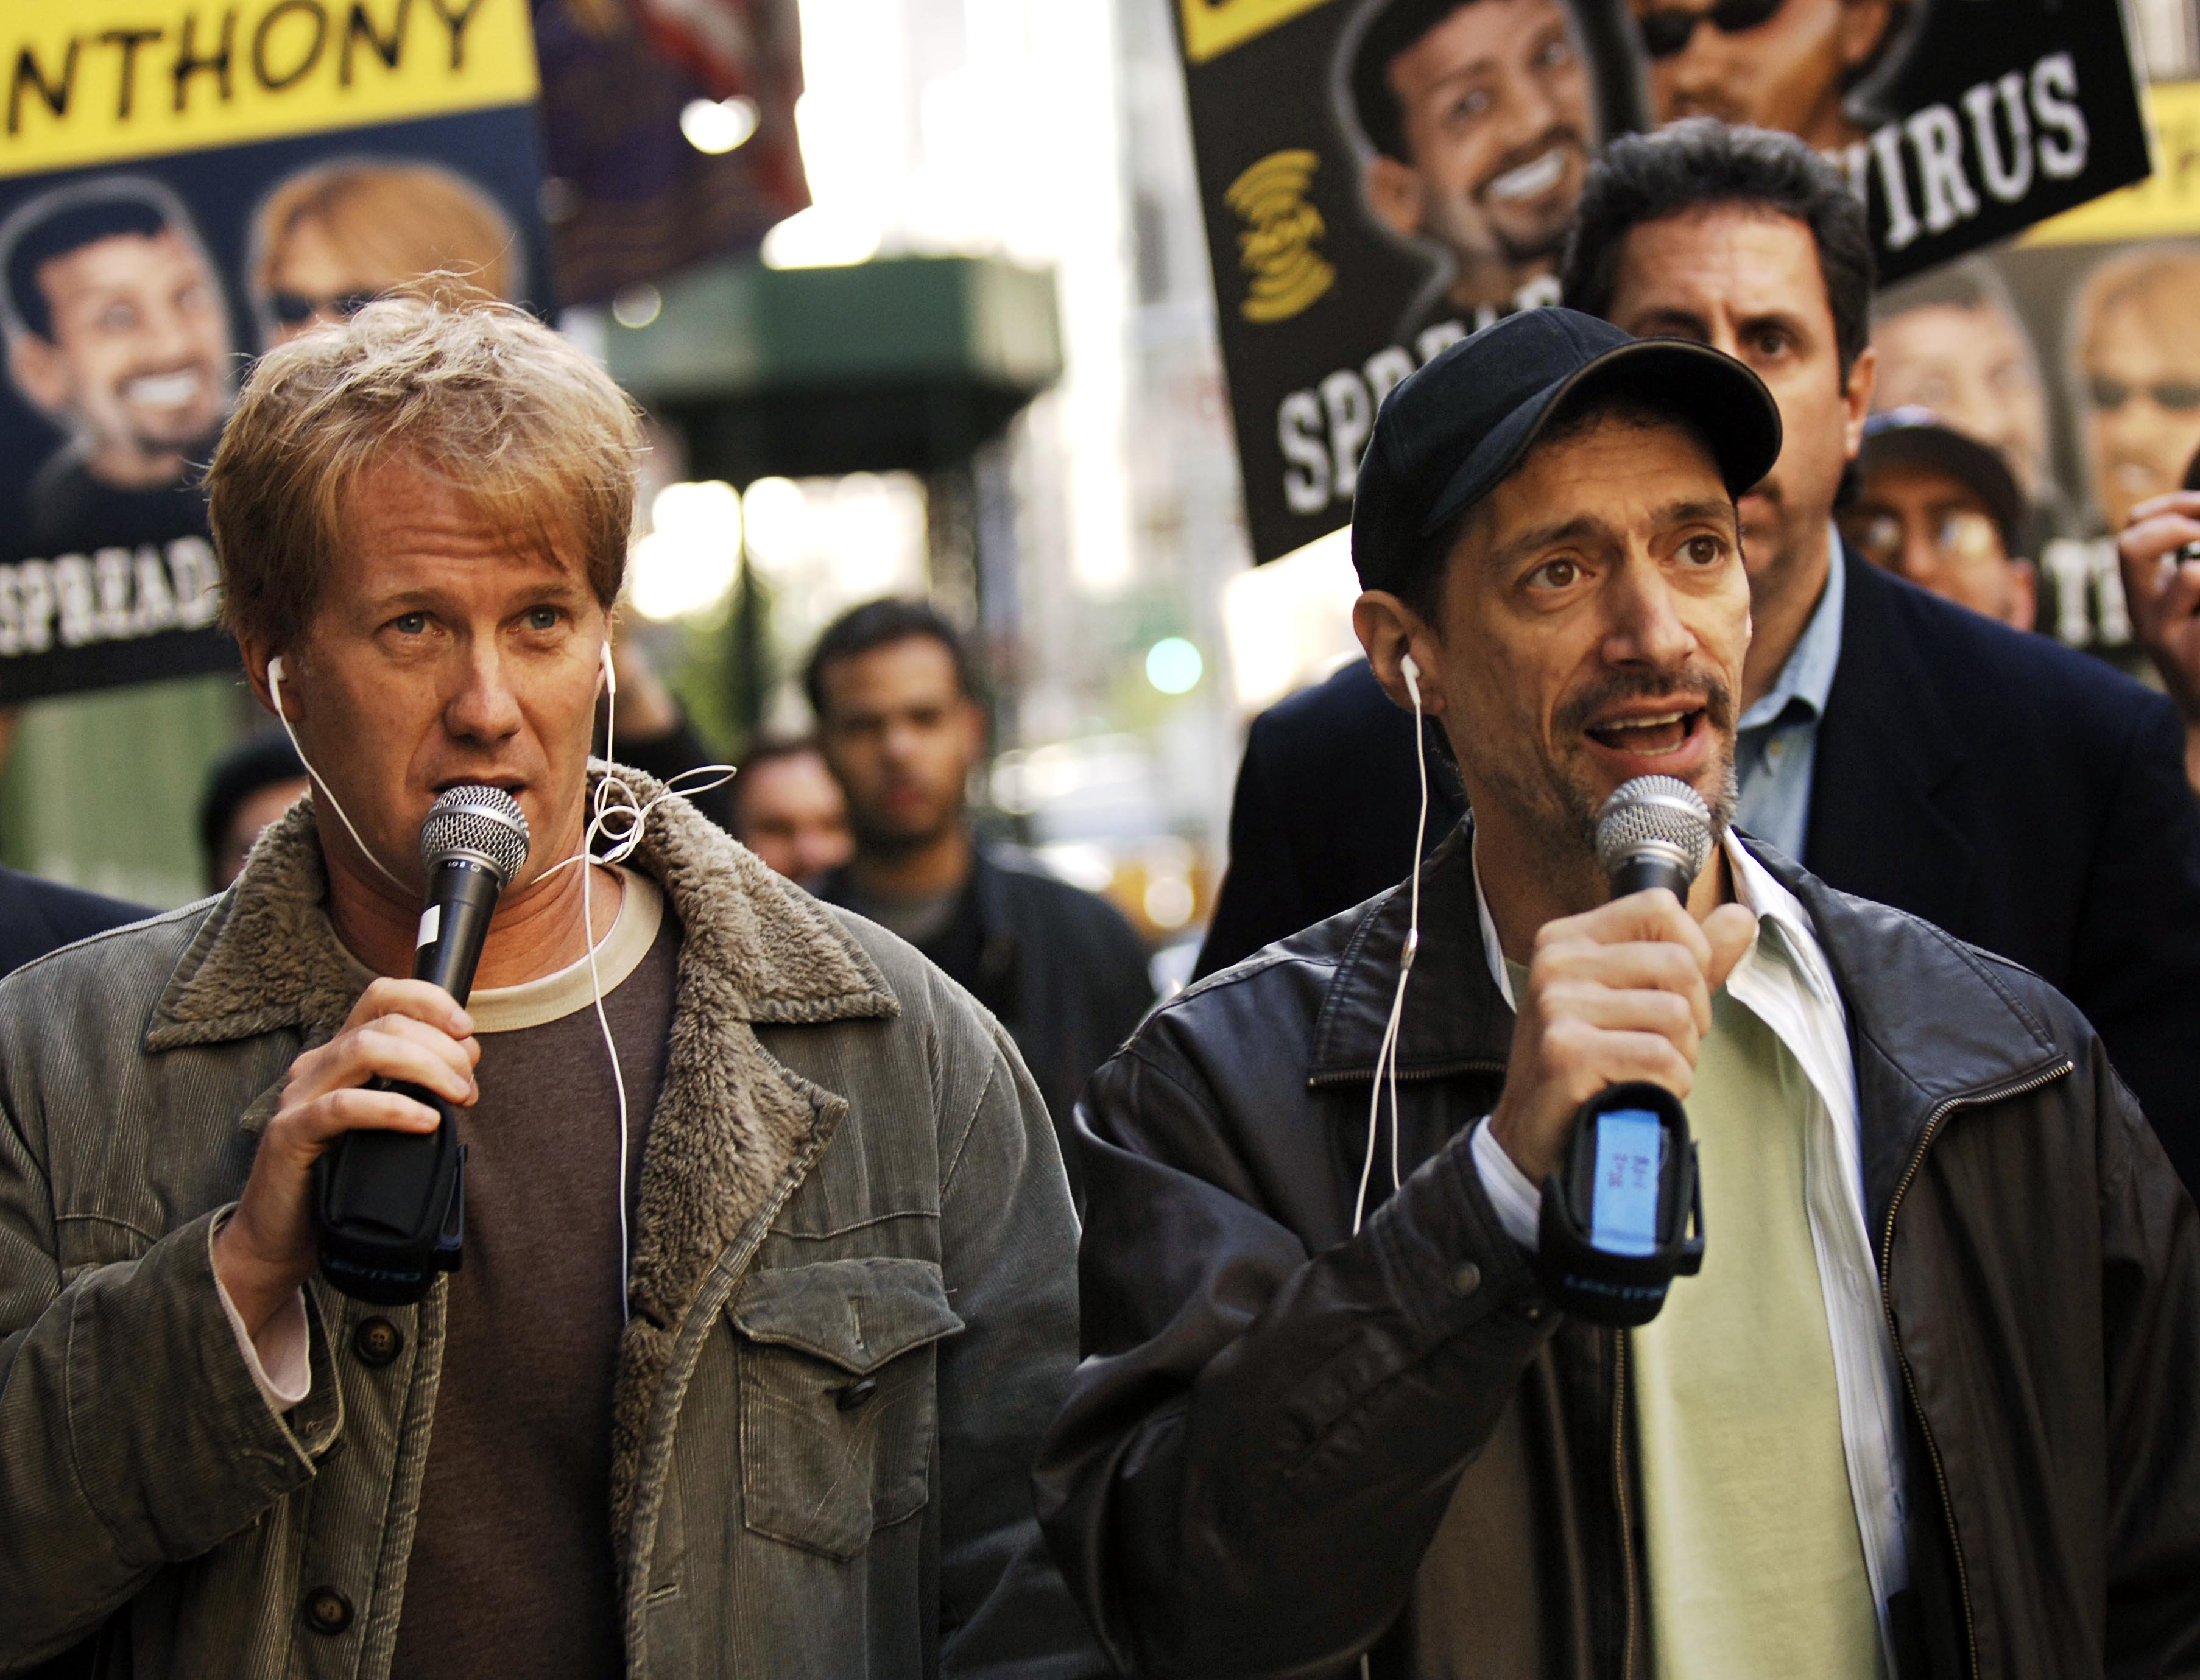 Radio shock jocks Greg  Opie  Hughes, left, and Anthony Cumia, right, leave CBS Radio studios on 57th Street with fans after finishing their first morning show, in New York.  Cumia of the  Opie & Anthony  radio show on  April 26, 2006.